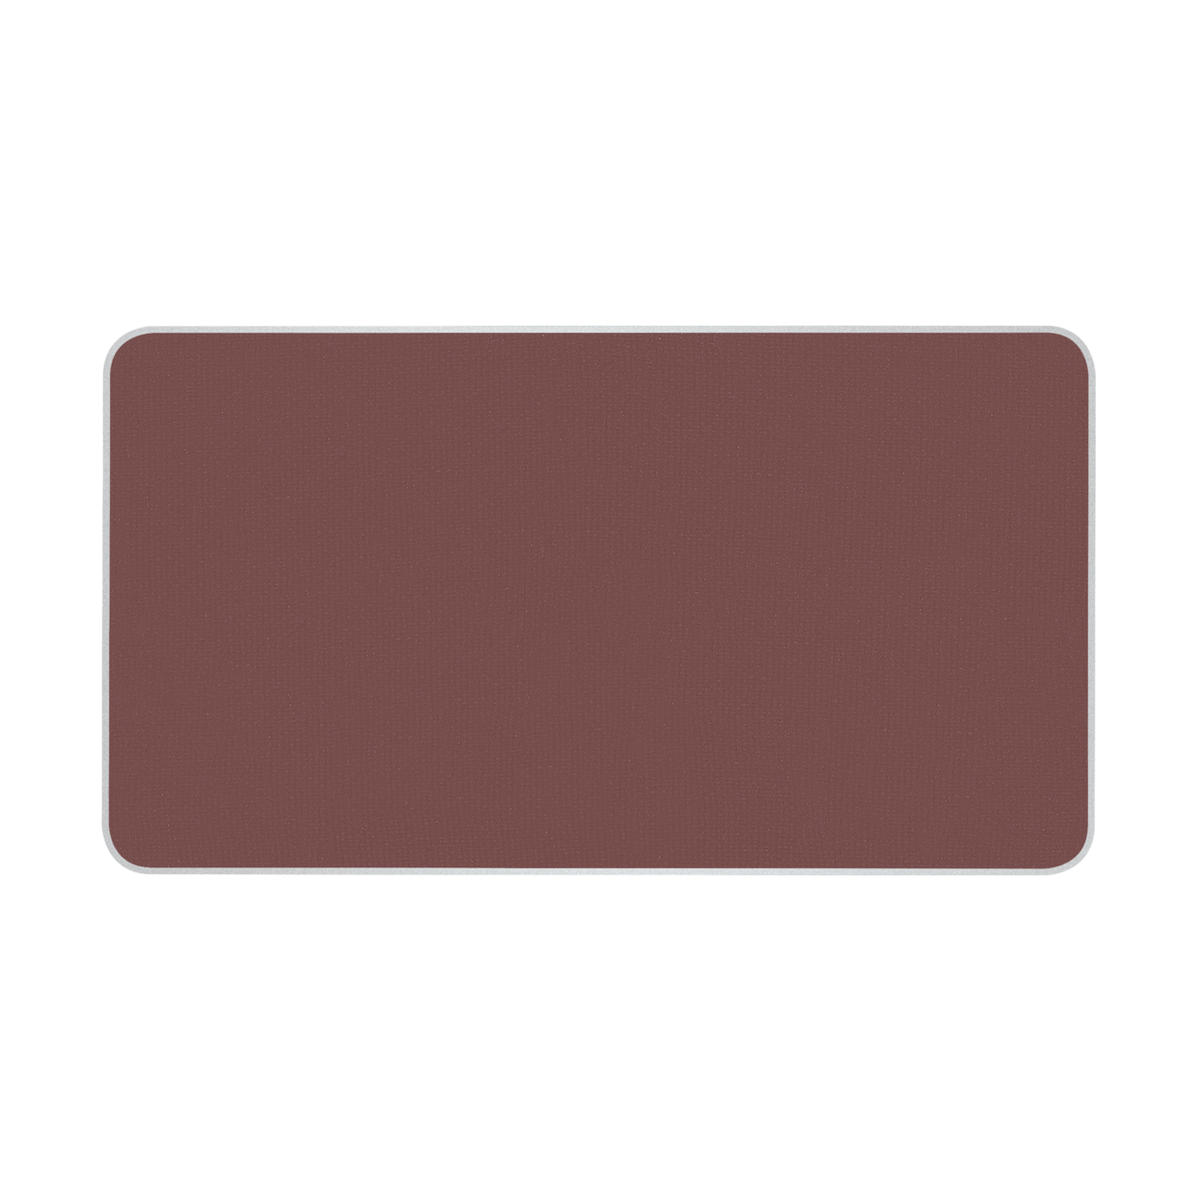 S404 Red Brown